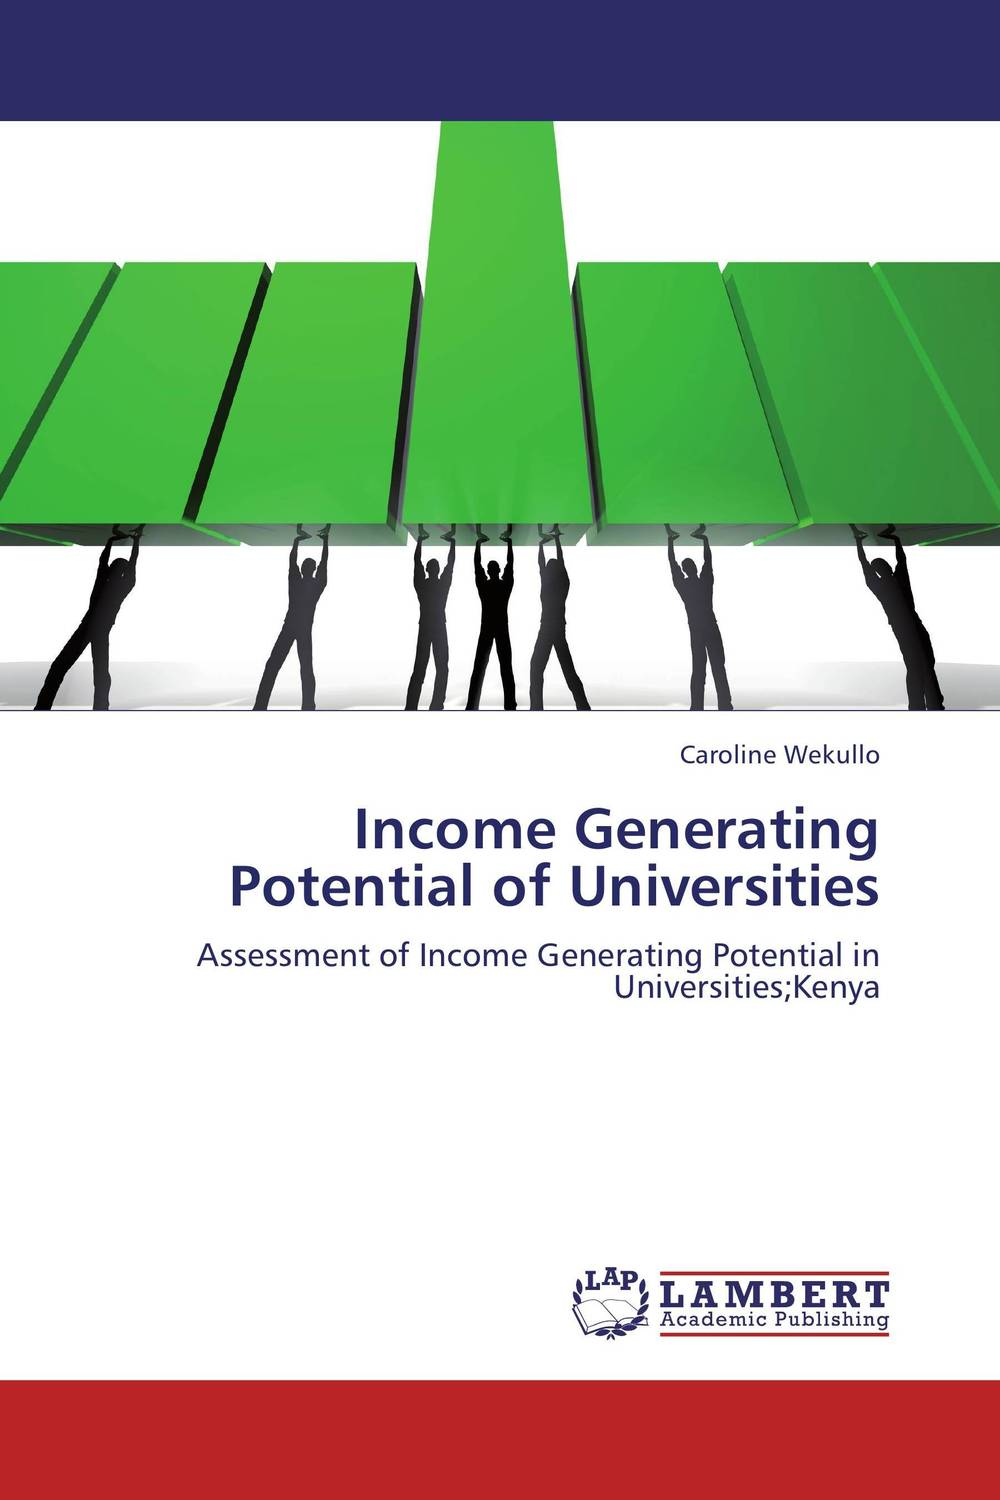 Income Generating Potential of Universities